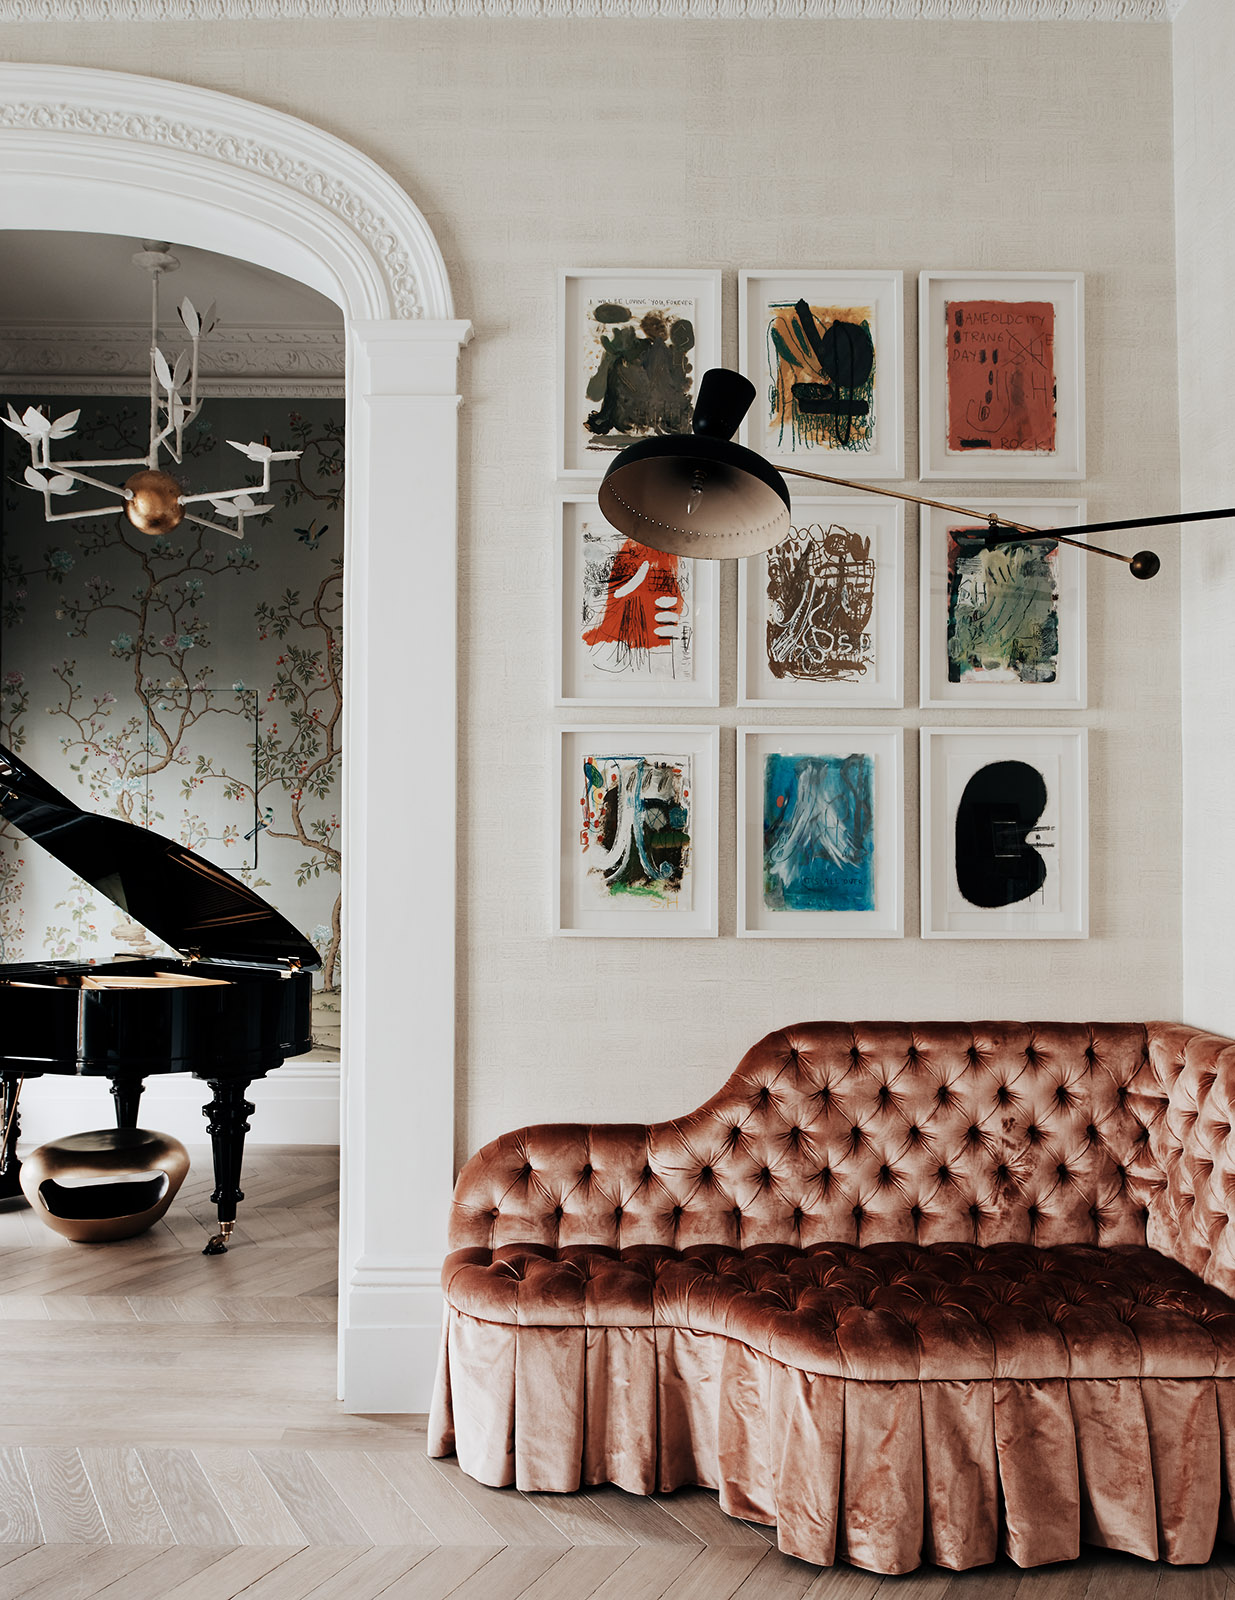 Décor Inspiration: The Photography of Michael Sinclair